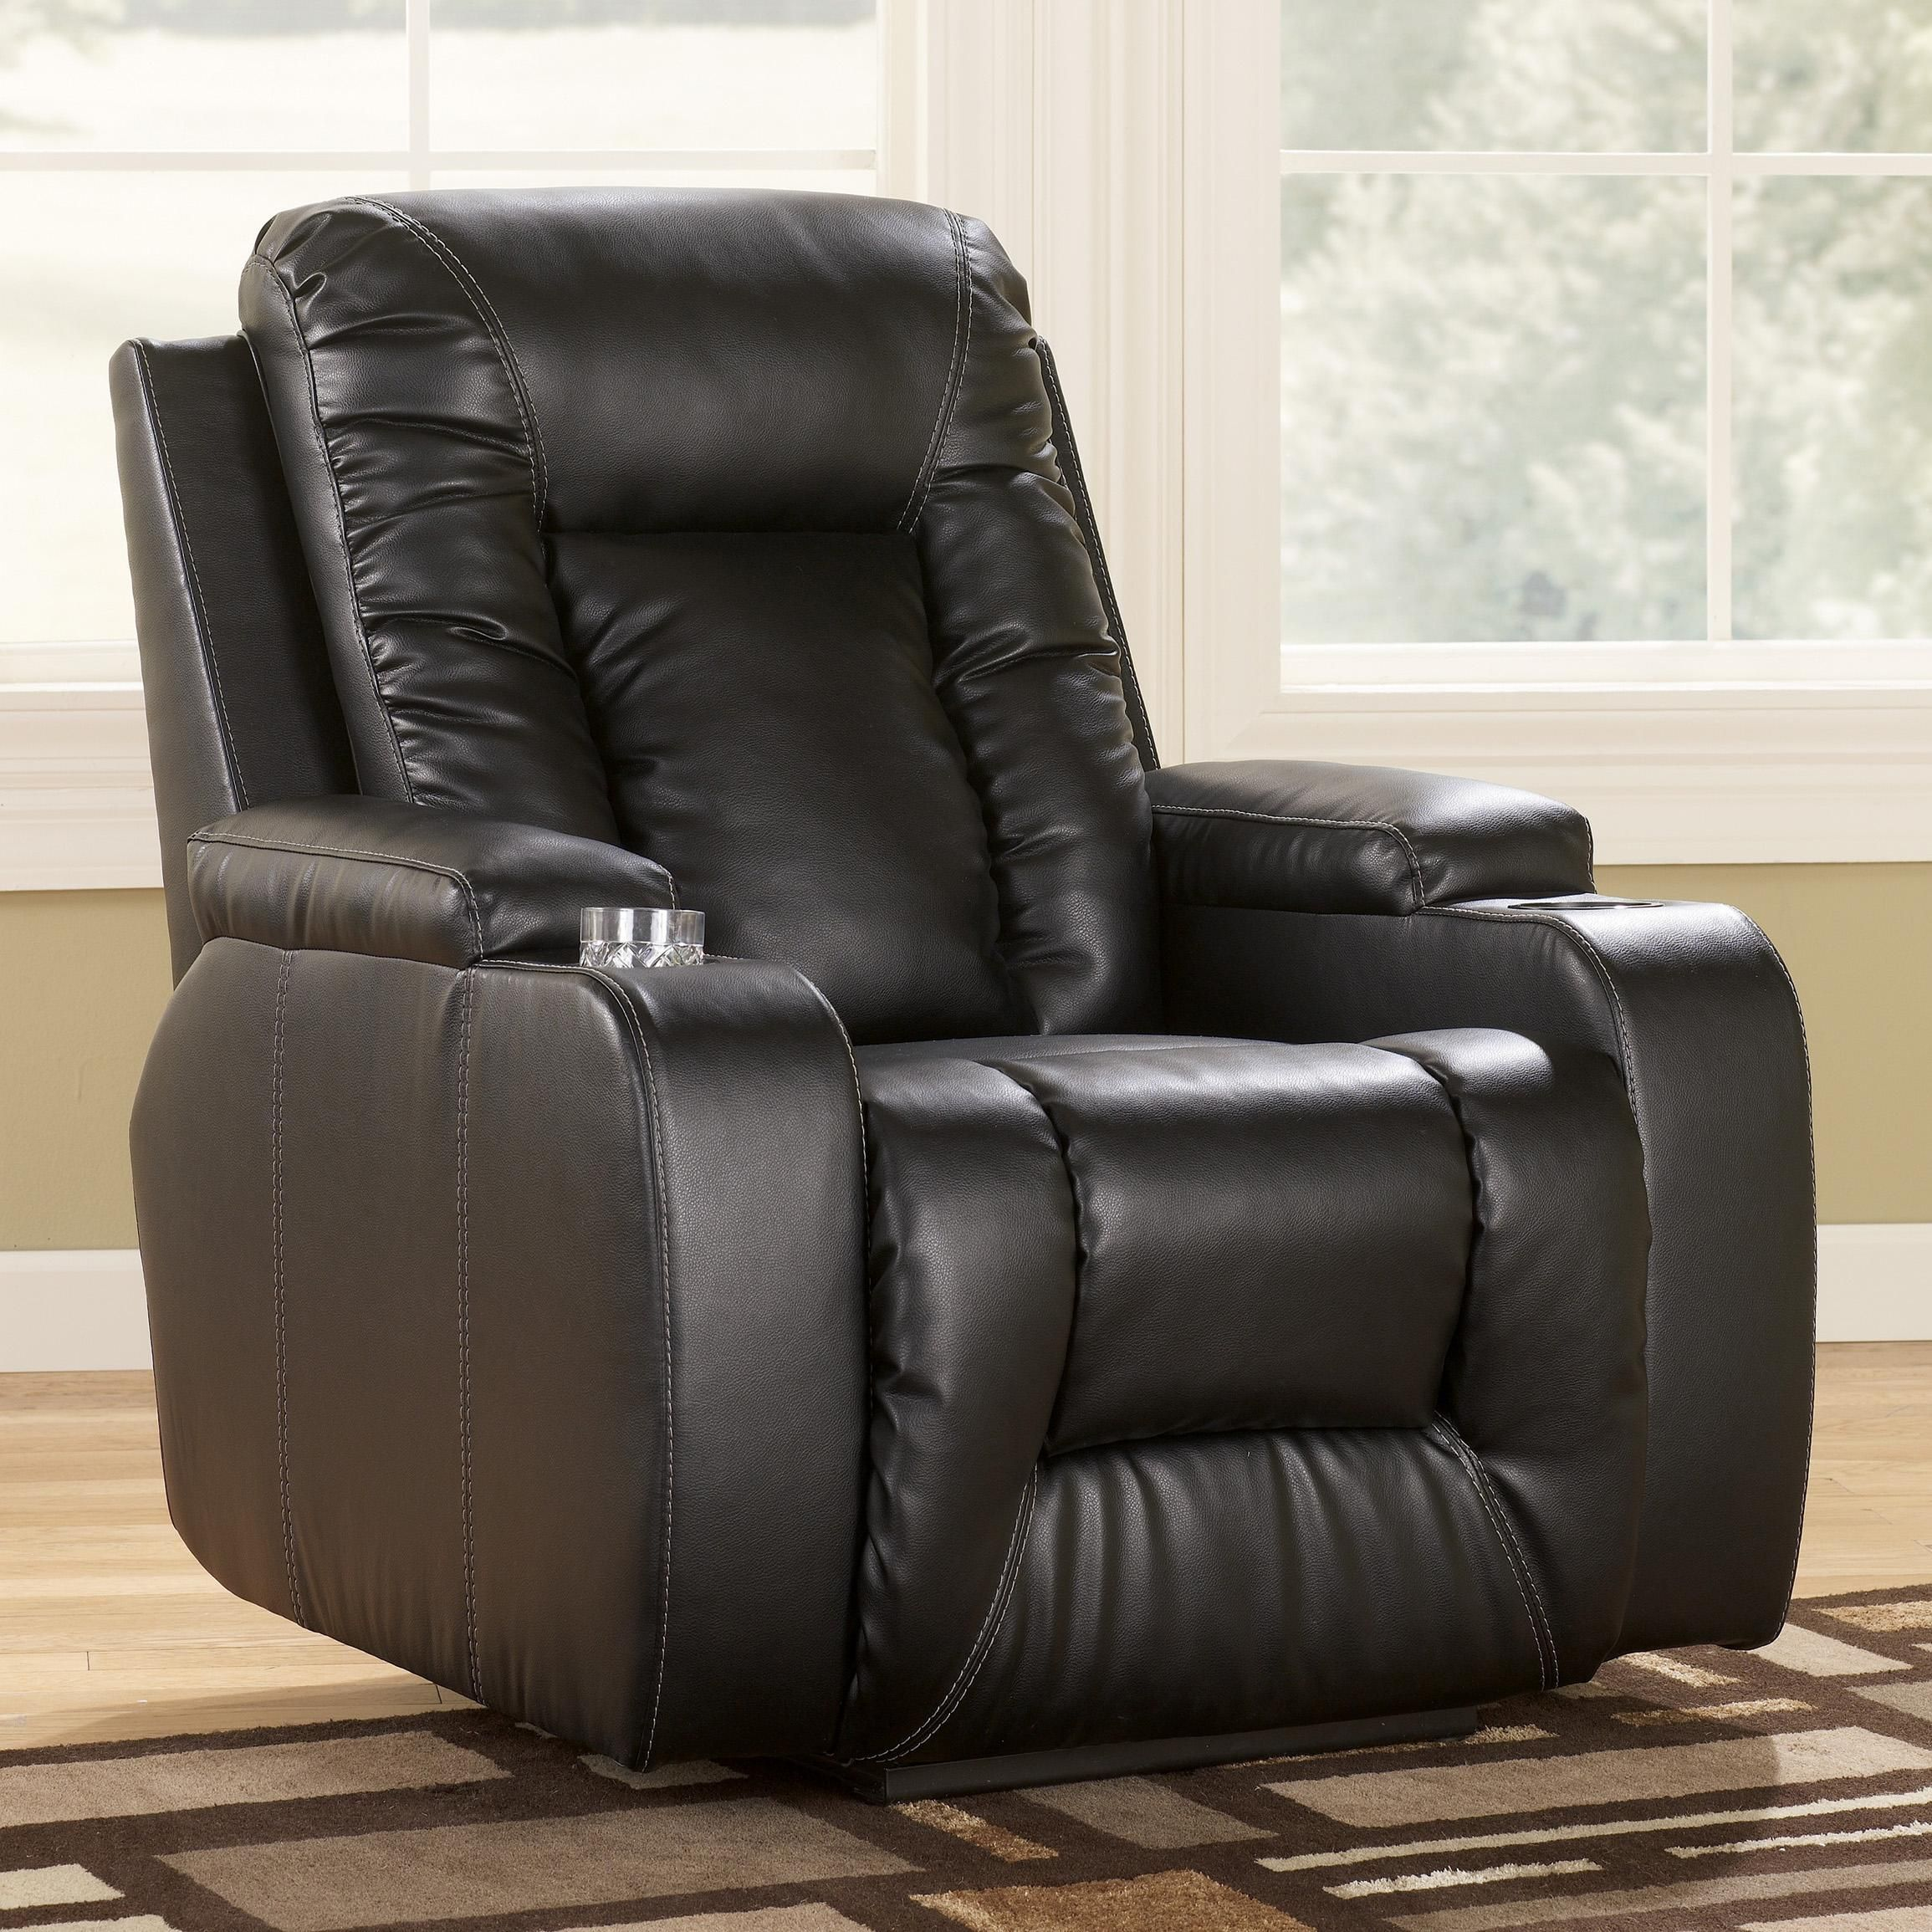 Leather Sofa Repair Service Birmingham: Eclipse Zero Wall Recliner By